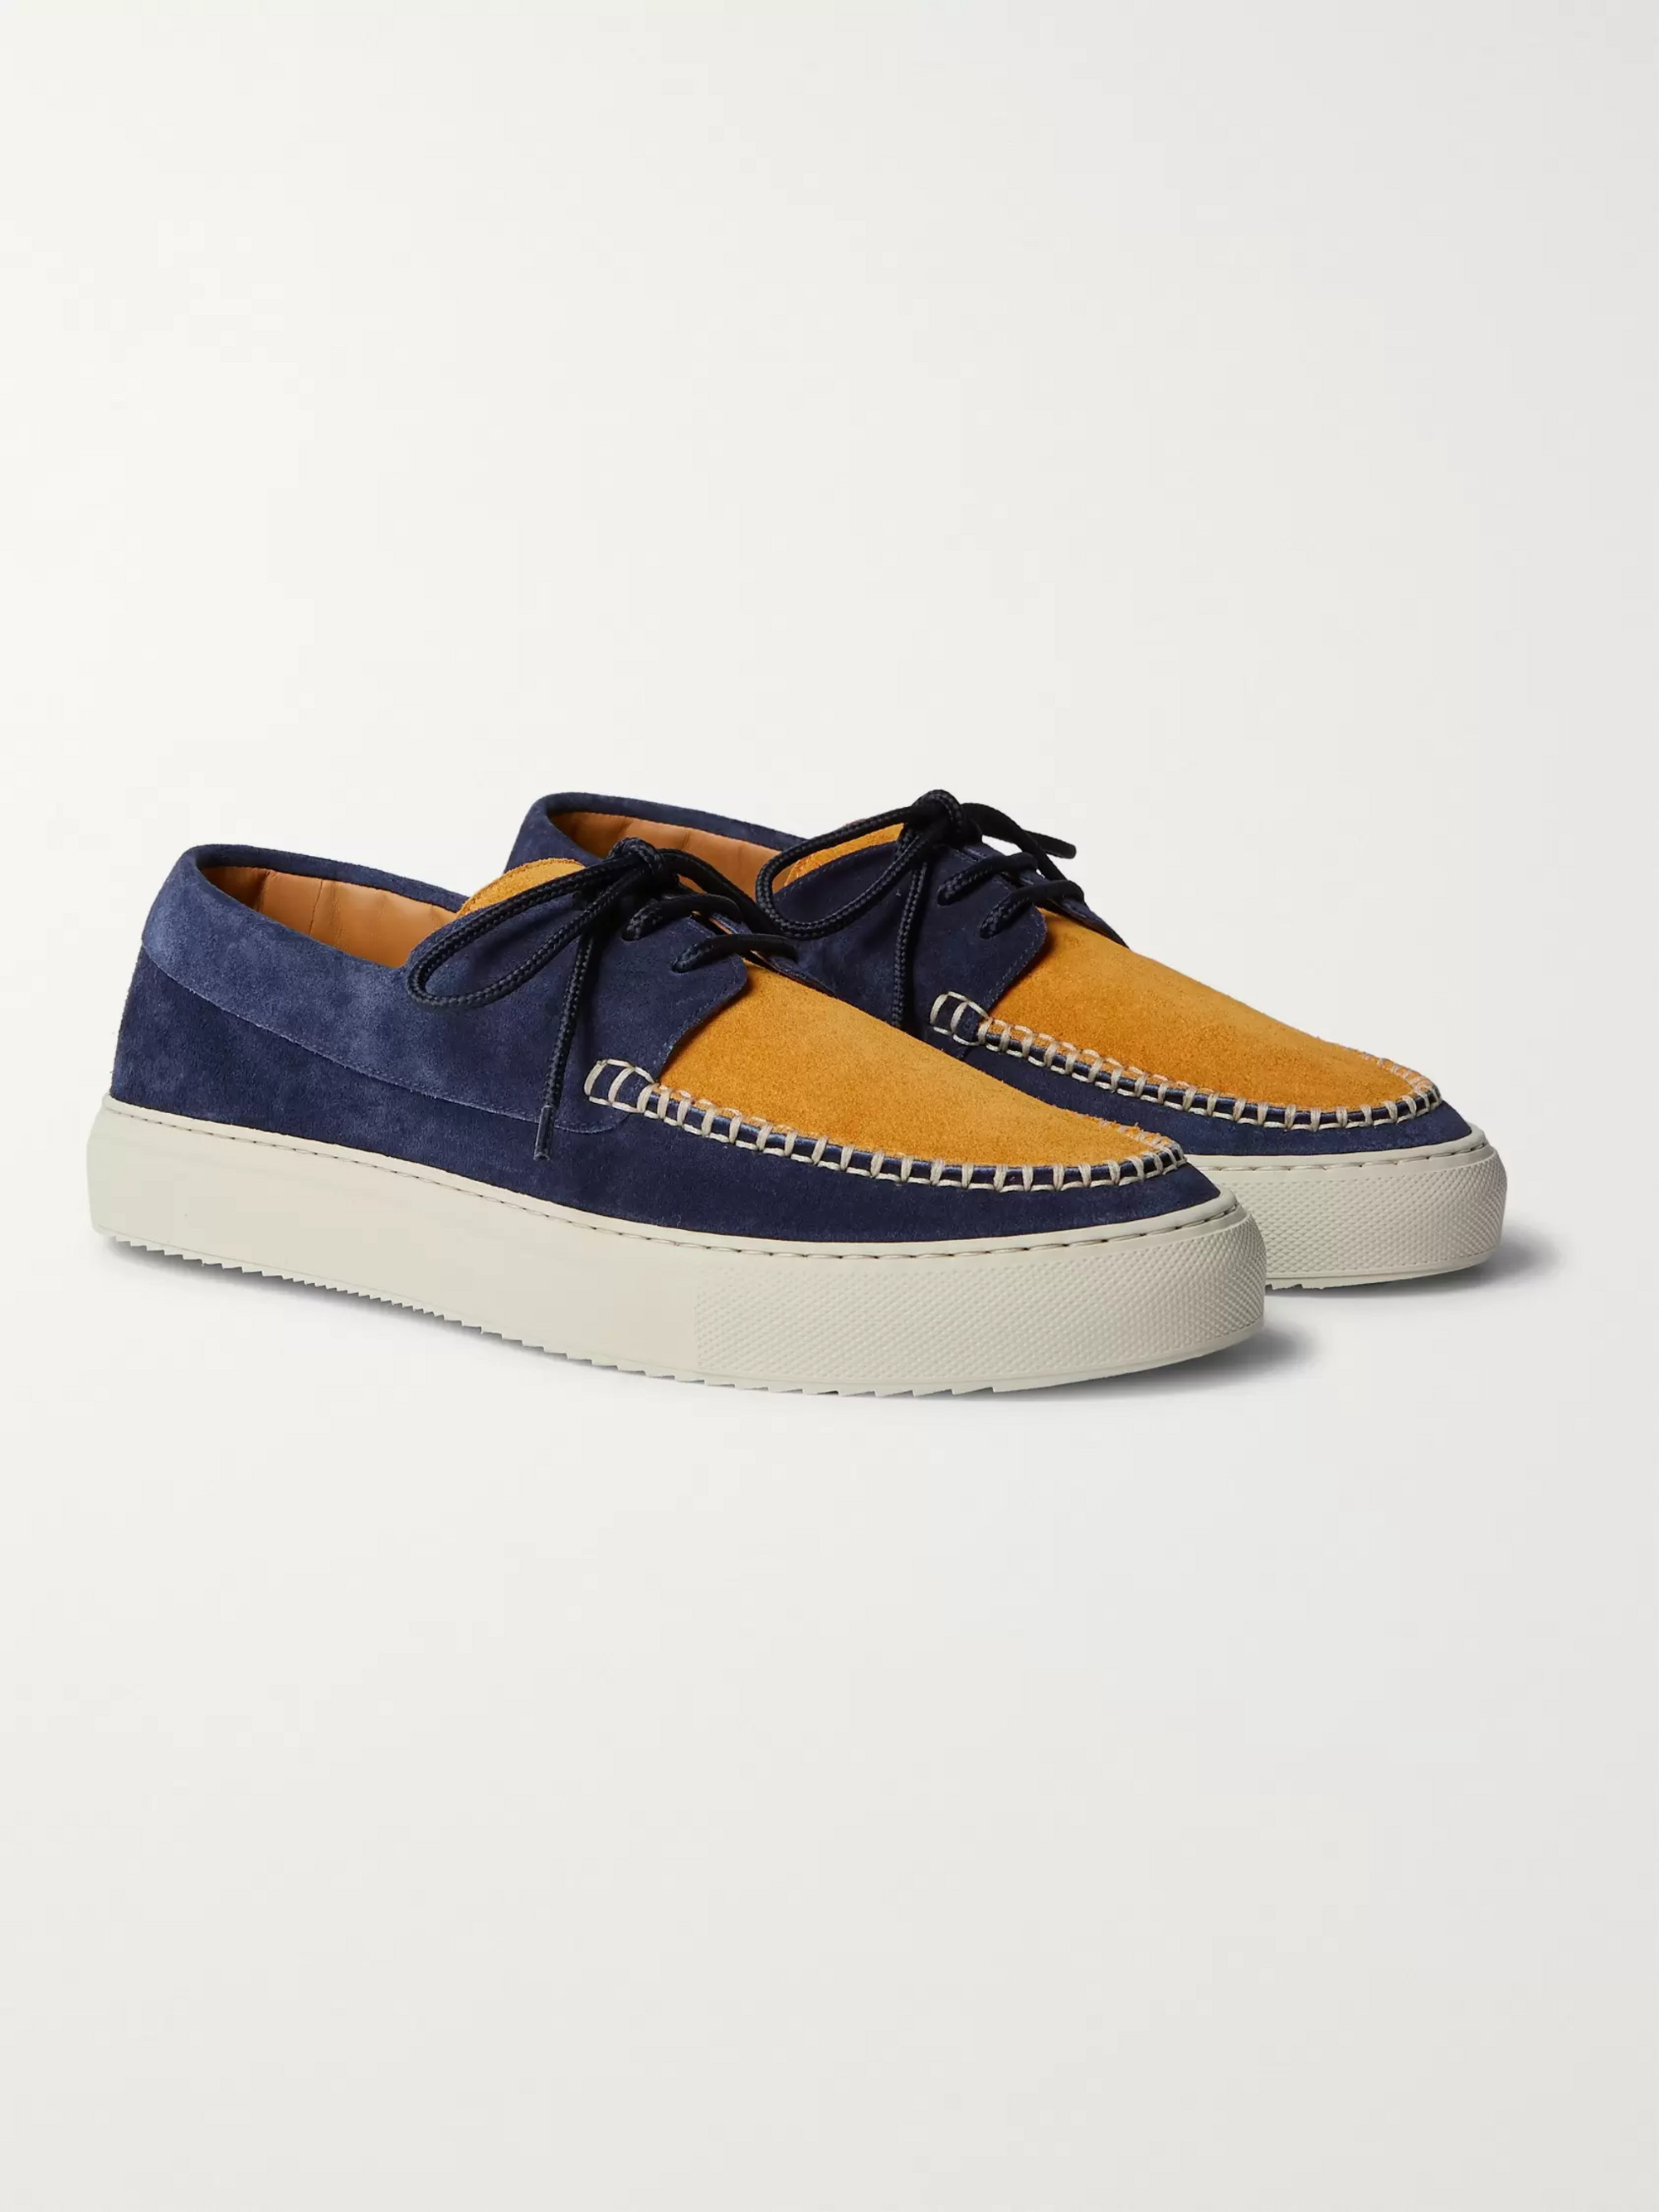 Mr P. Dennis Two-Tone Suede Boat Shoes